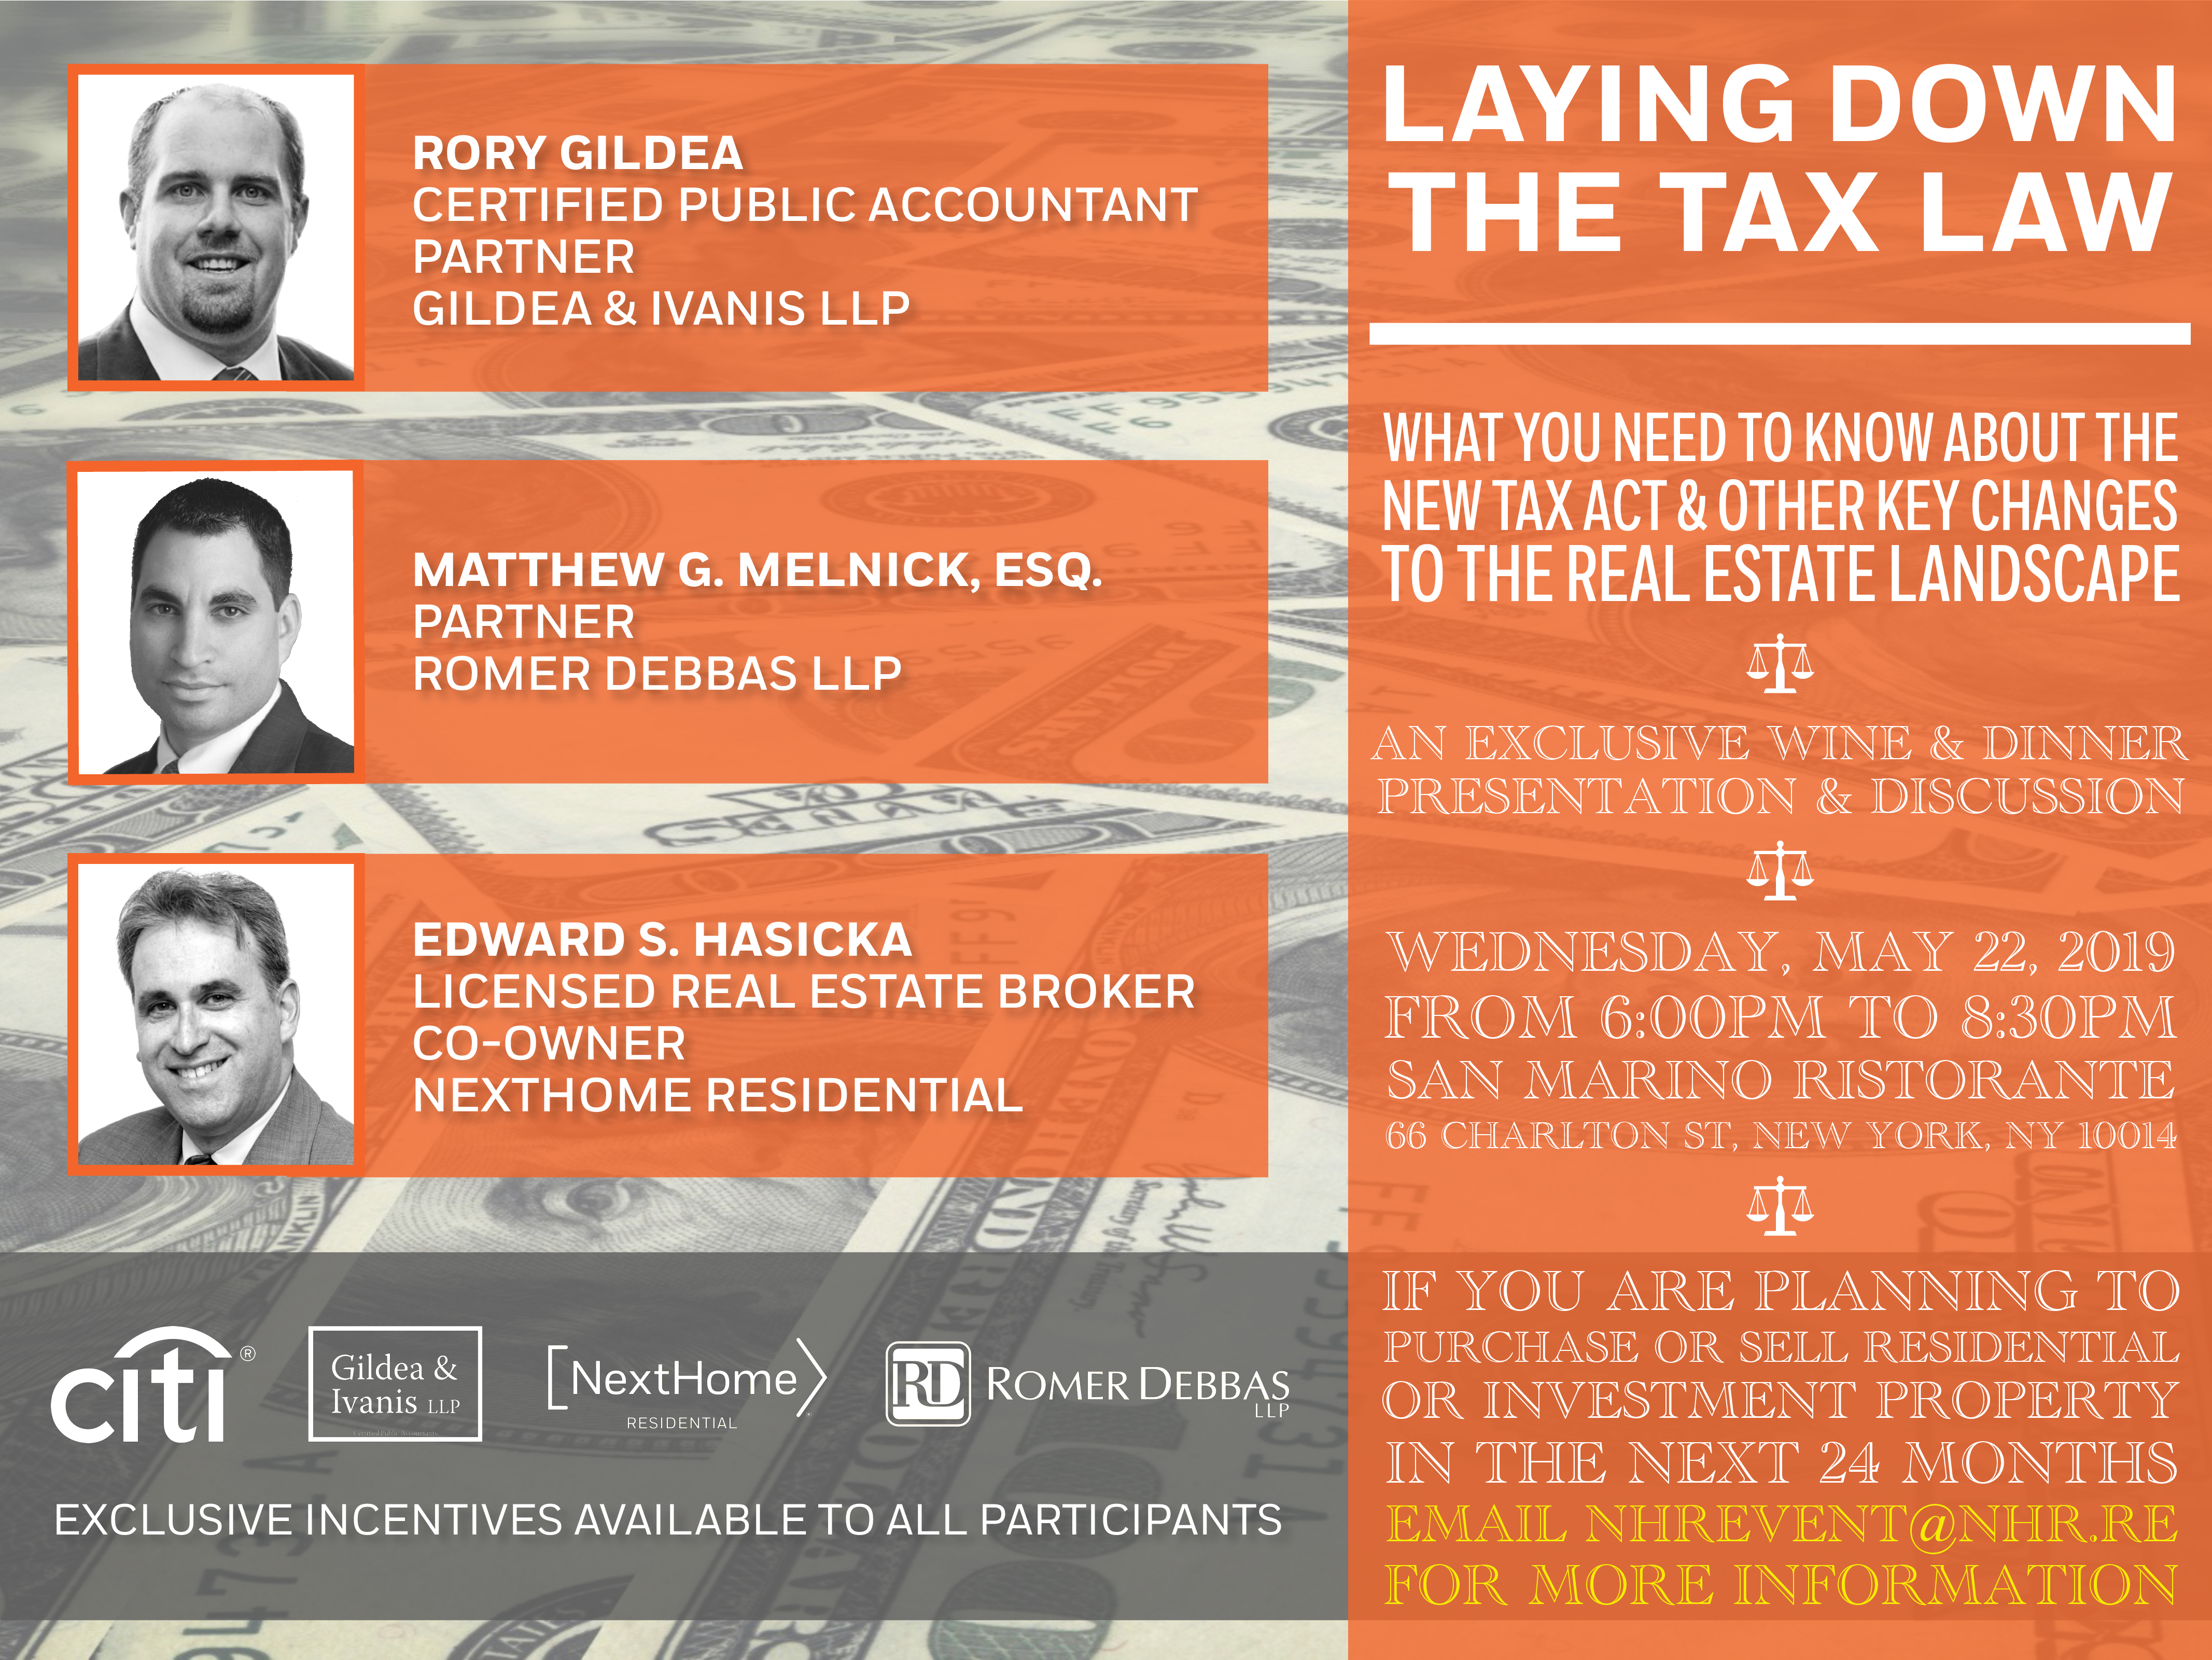 Laying Down the Tax Law Event | May 22, 2019 at San Marino Ristorante, NextHome Residential | New York Licensed Real Estate Broker